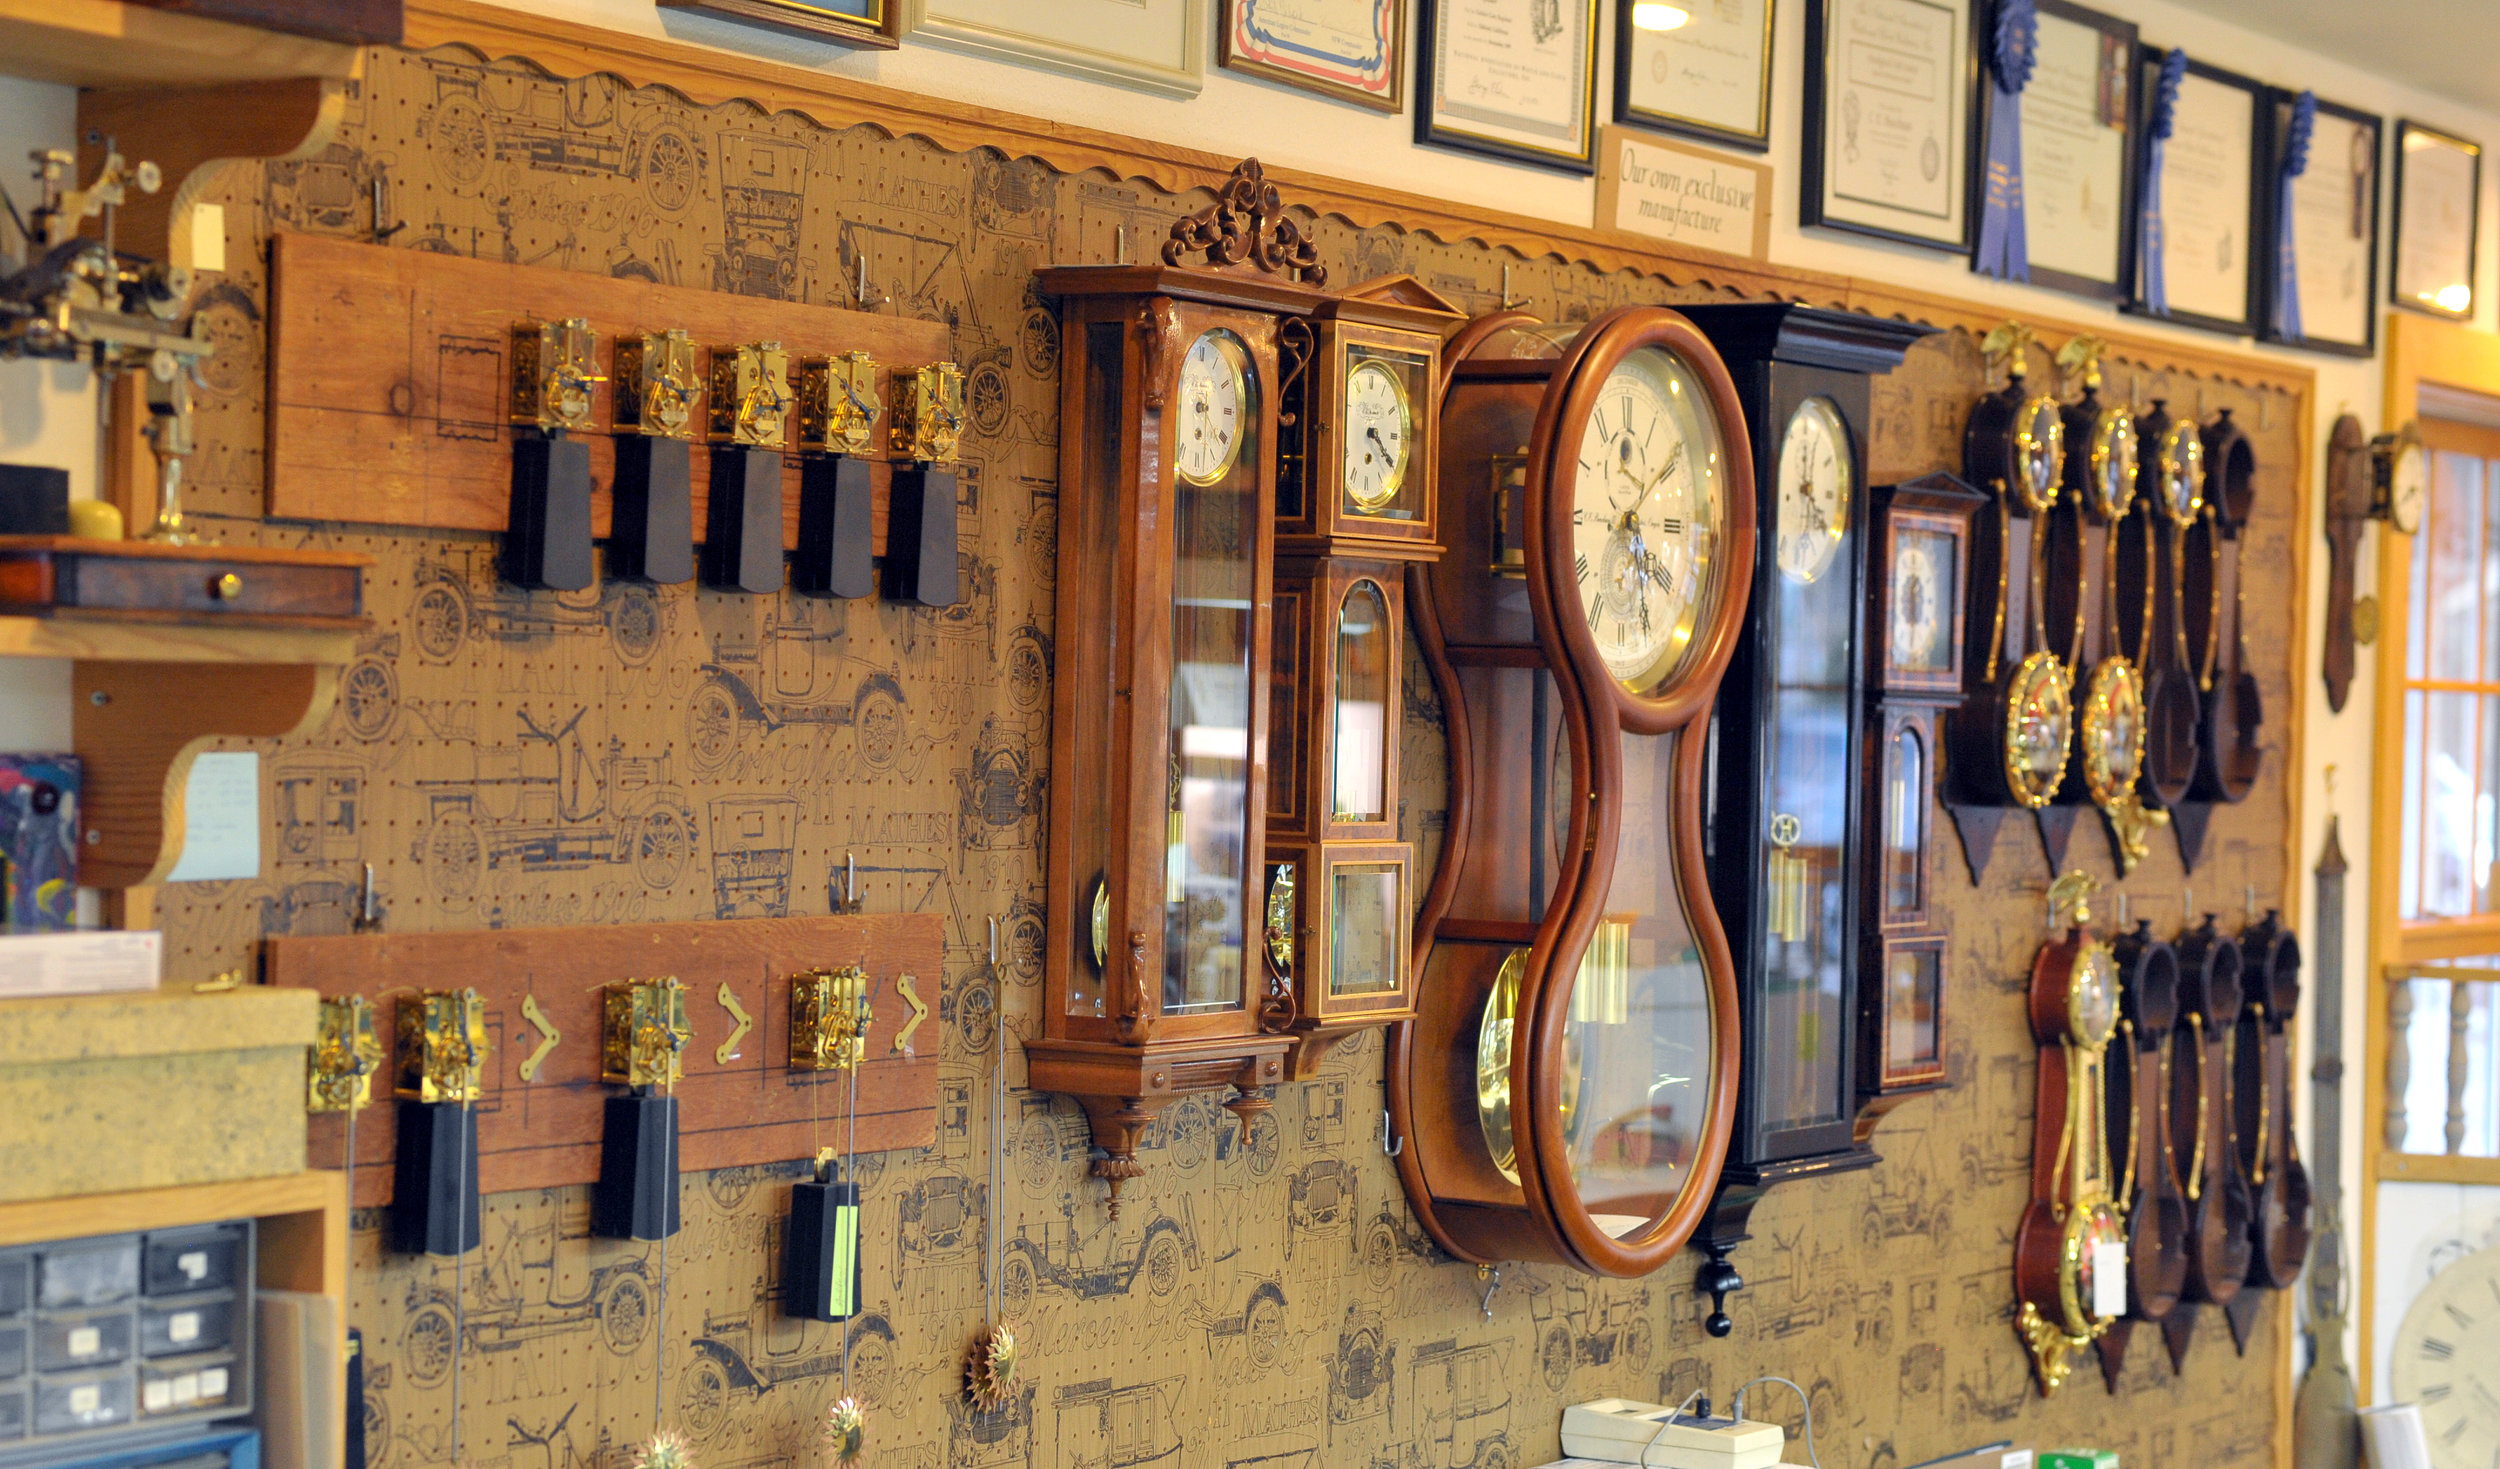 A sampling of Ed's clocks both finished and in the manufacturing process